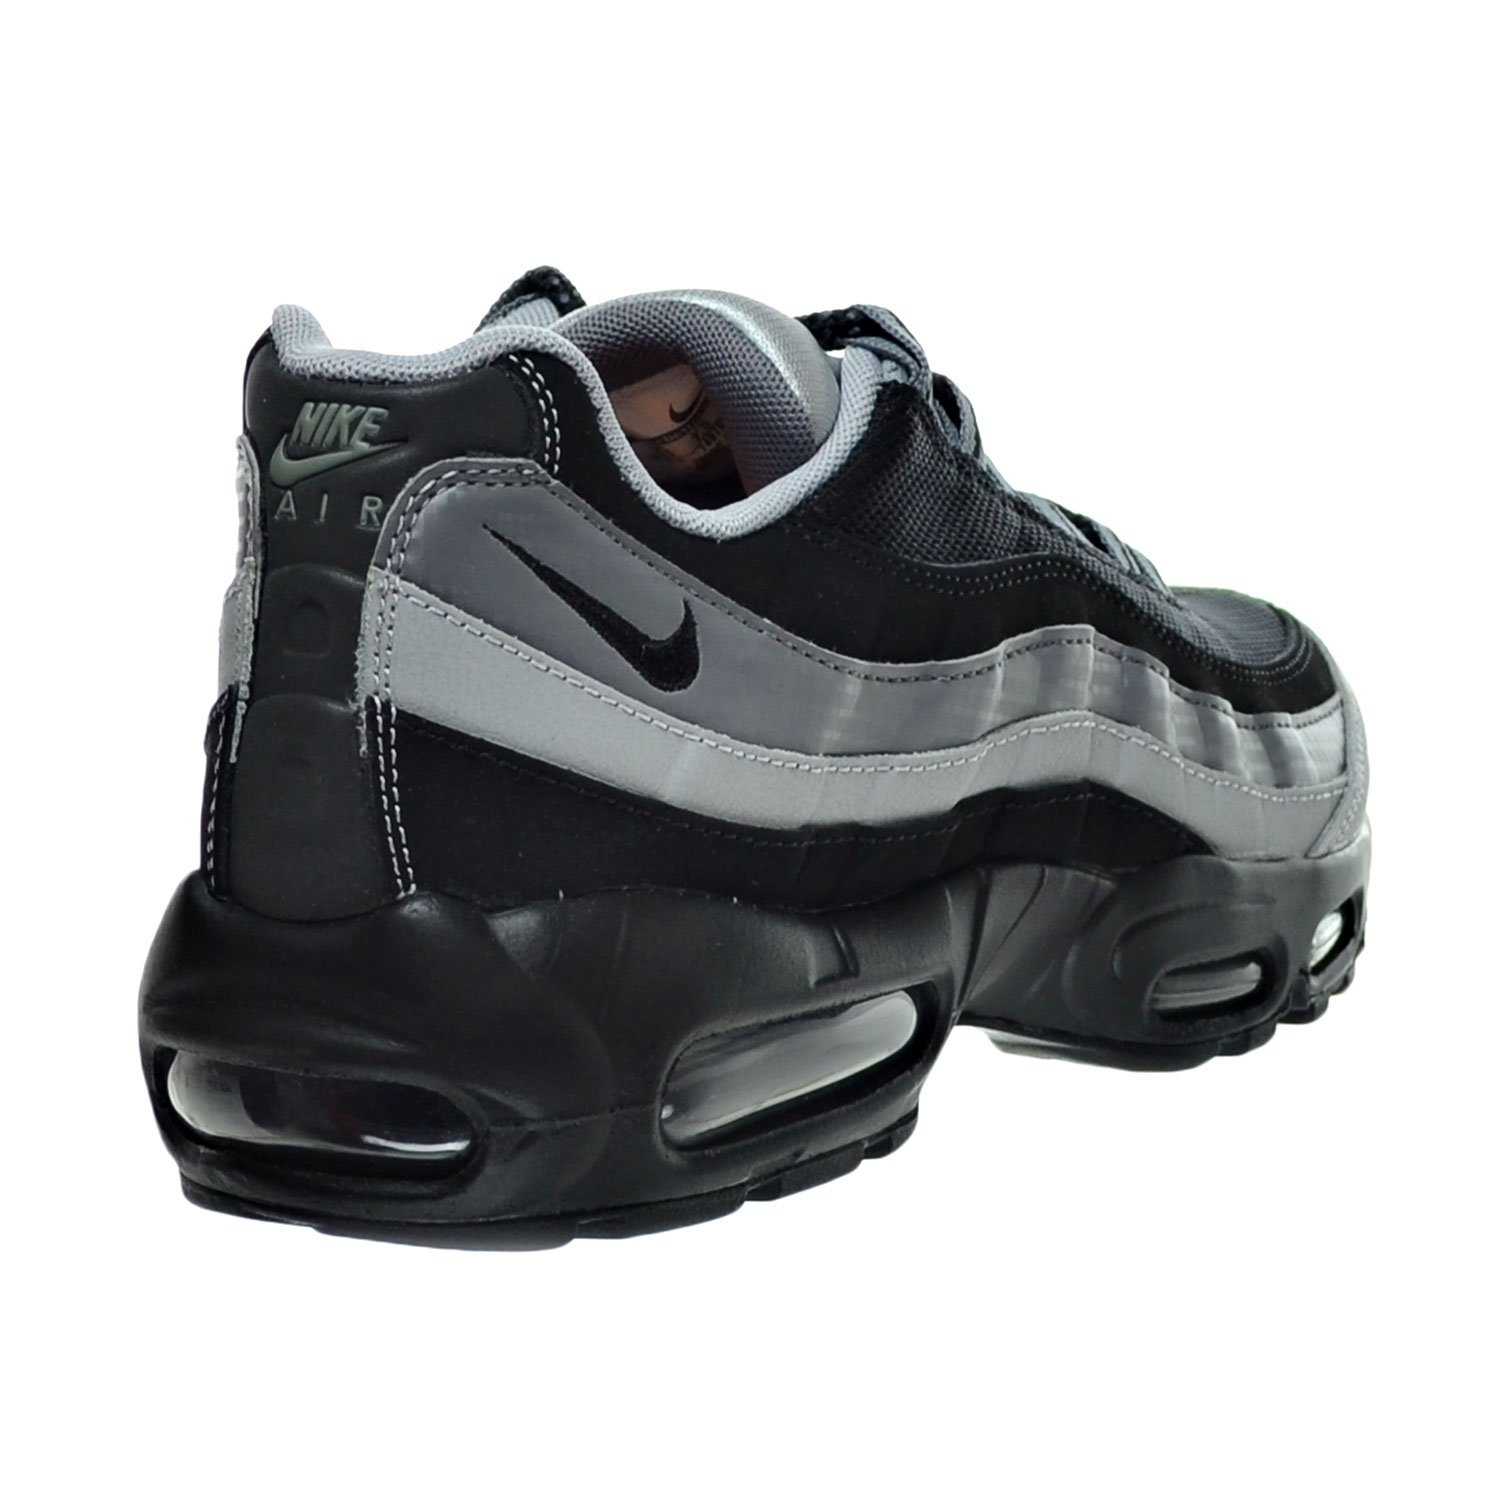 1aac93bcc1 Amazon.com | Nike Air Max 95 Essential Men's Shoes Black/Wolf Grey/Cool Grey  749766-005 | Fashion Sneakers